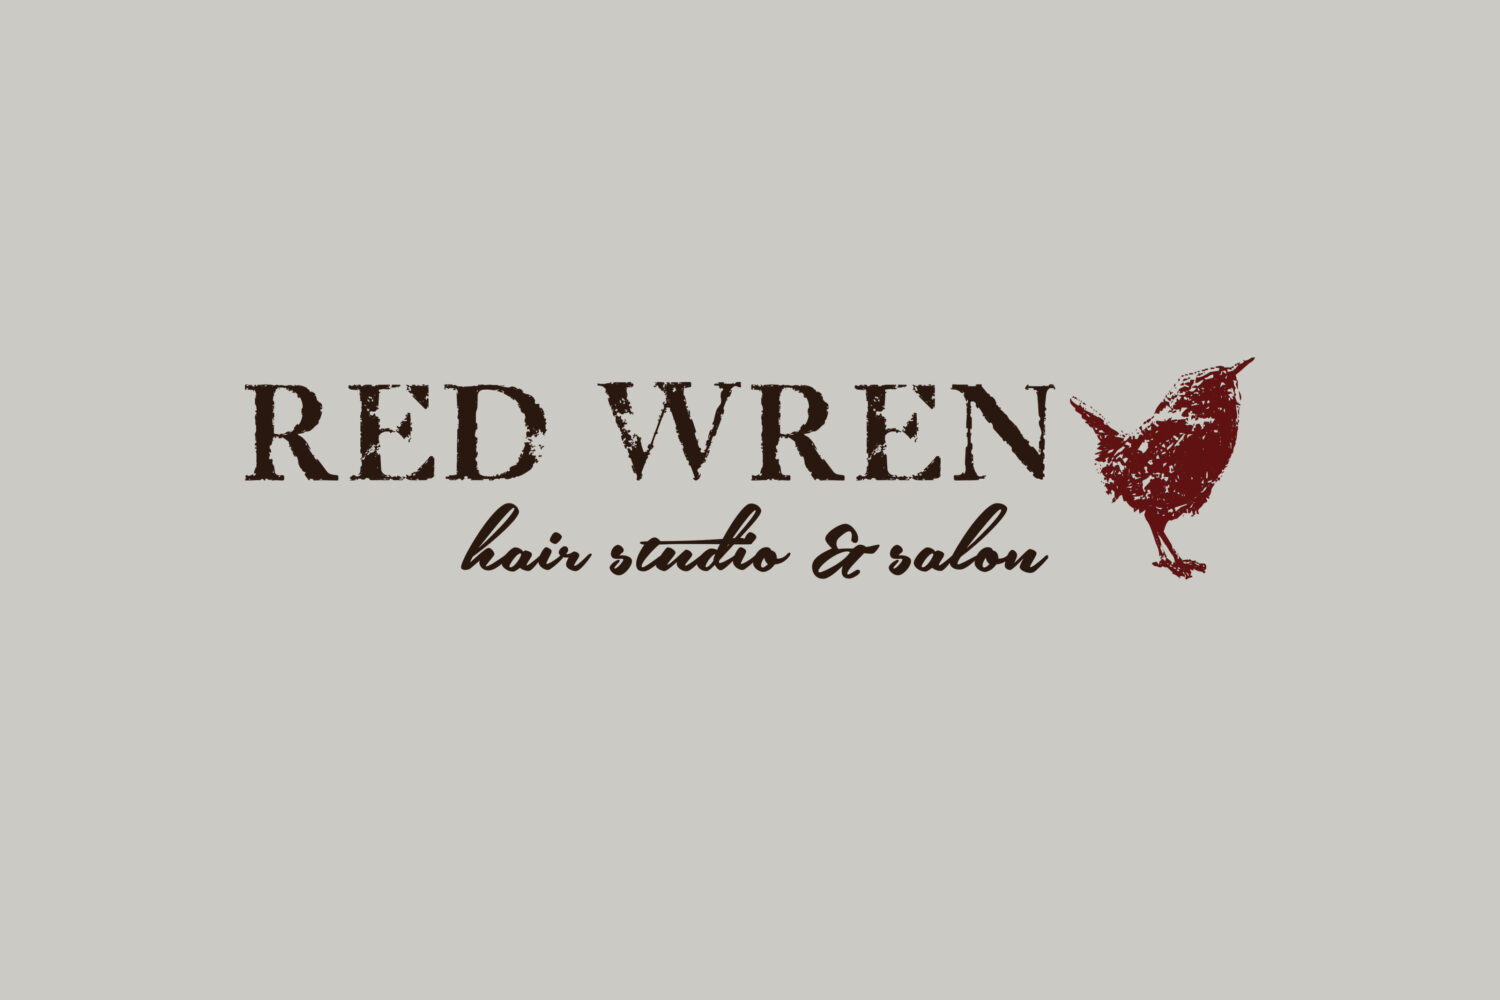 Red Wren Hair Studio & Salon logo design & brand identity by A LA MODE designs